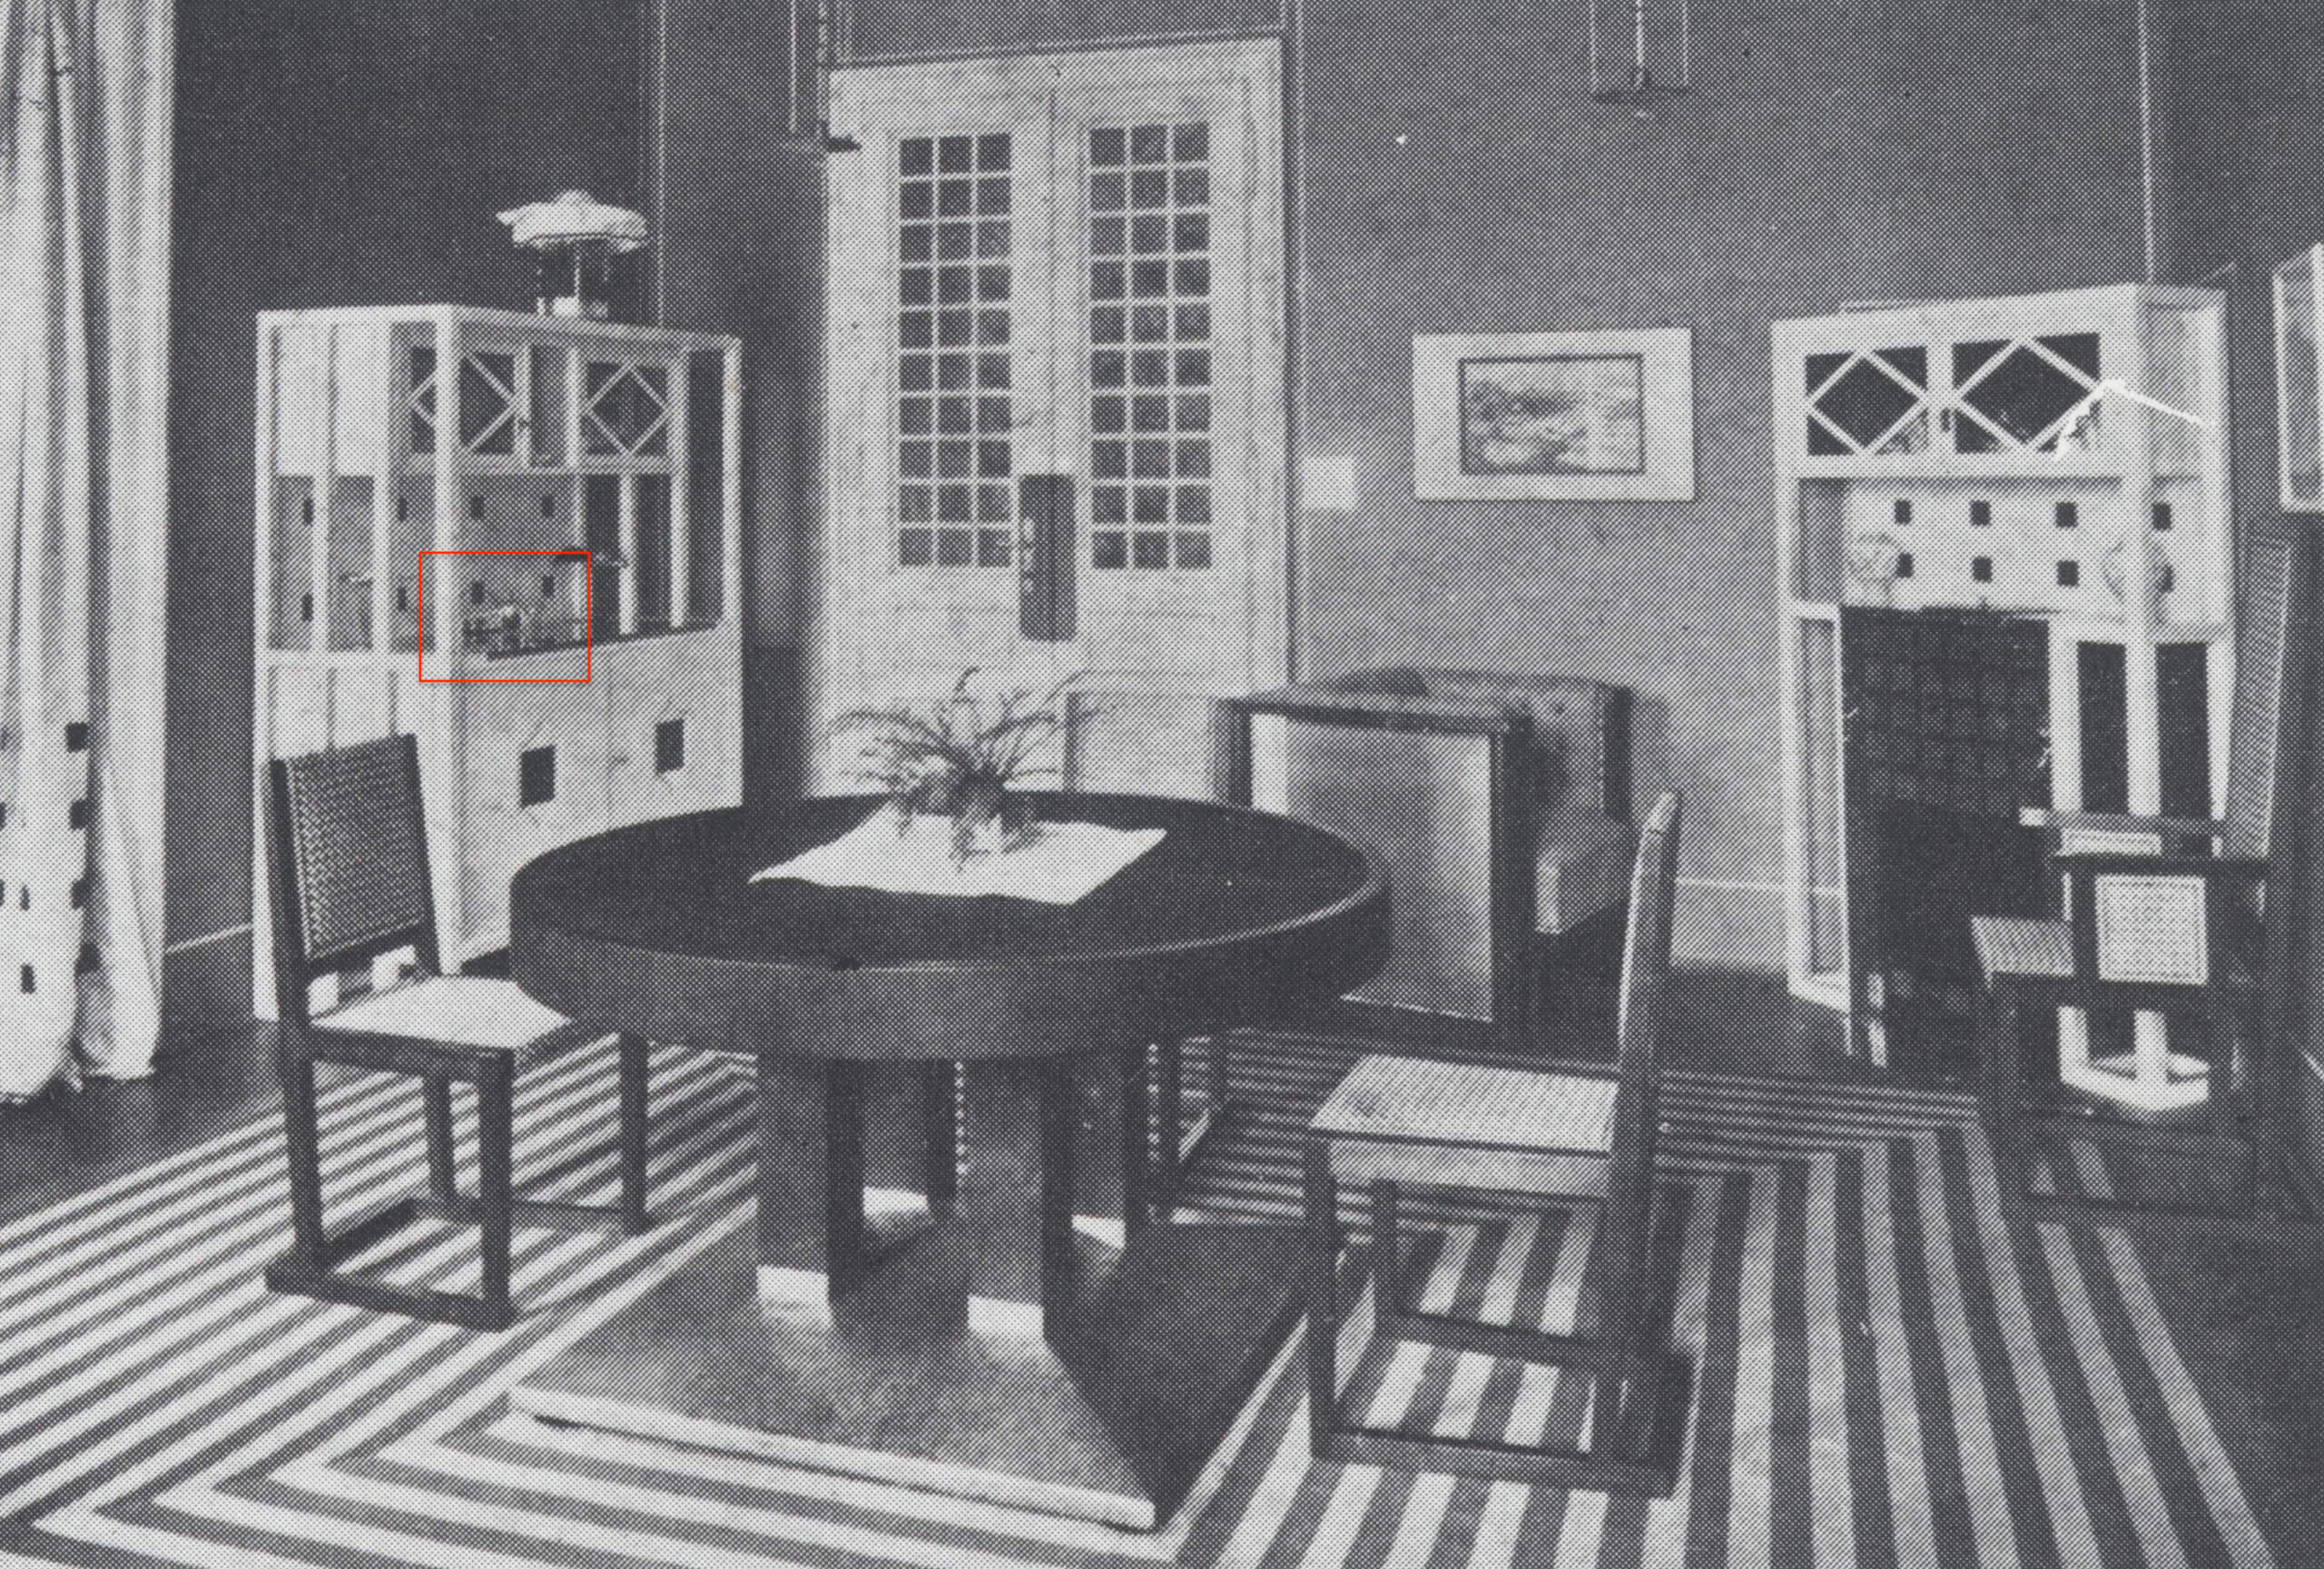 Archive of the Dr. Salzer's interior